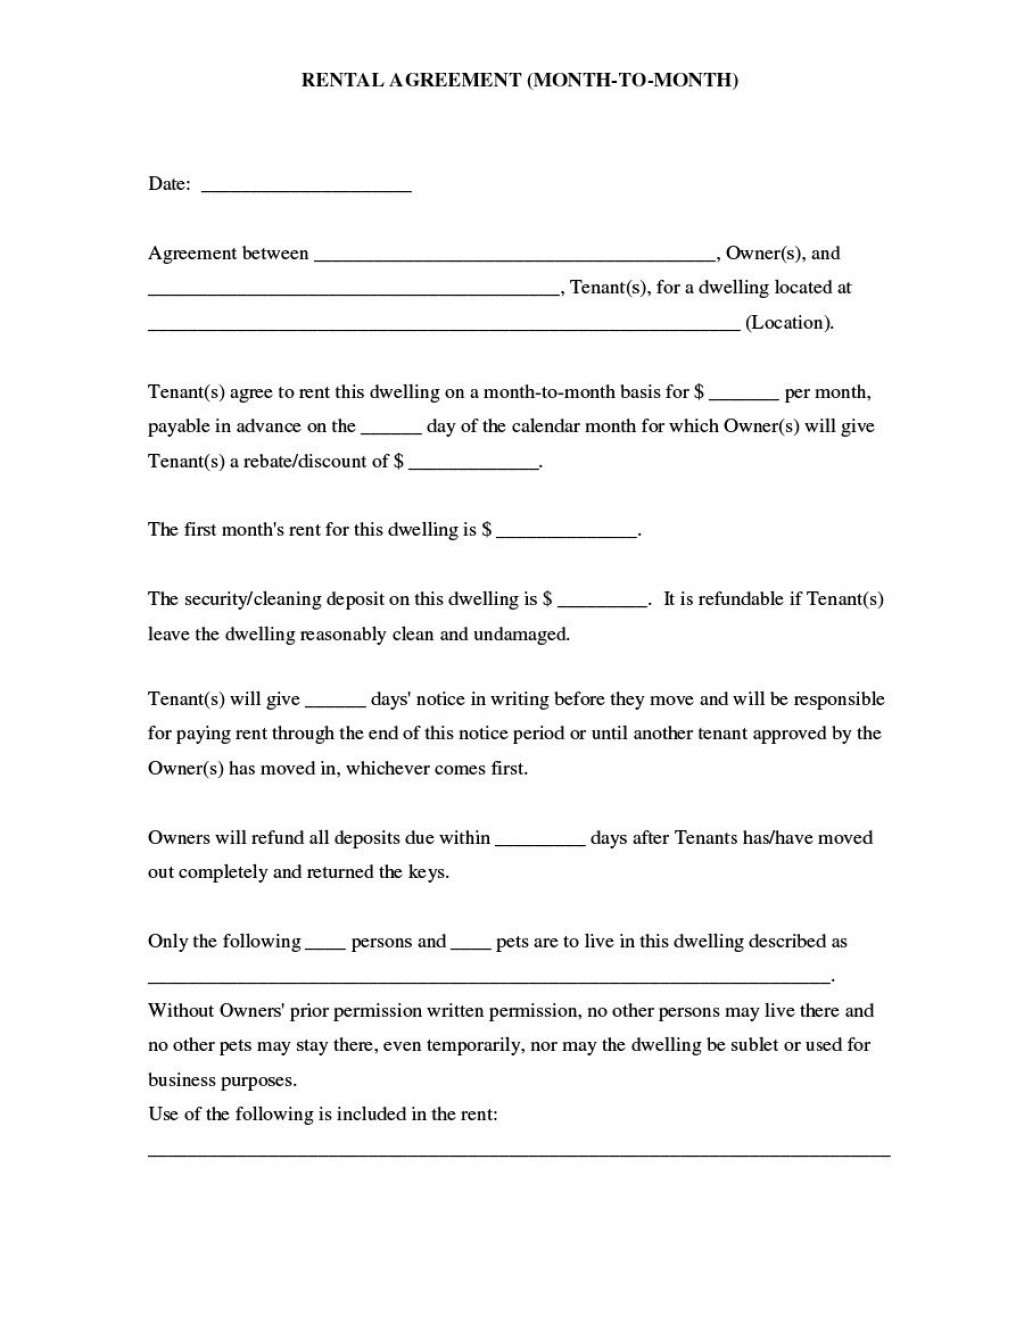 006 Unique Property Management Agreement Template South Africa Picture Large